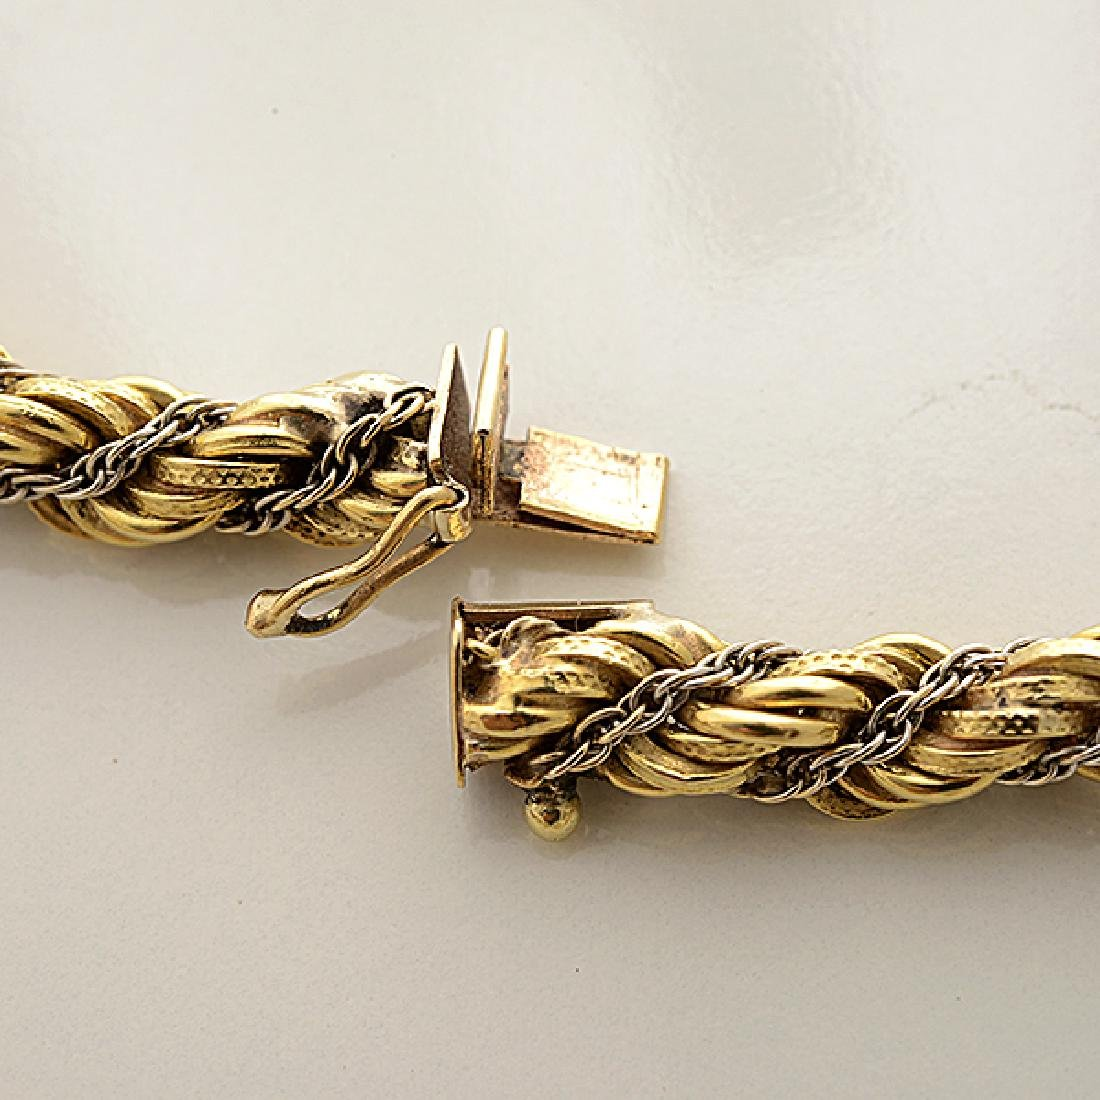 18k Gold Long Chain Necklace. - 5